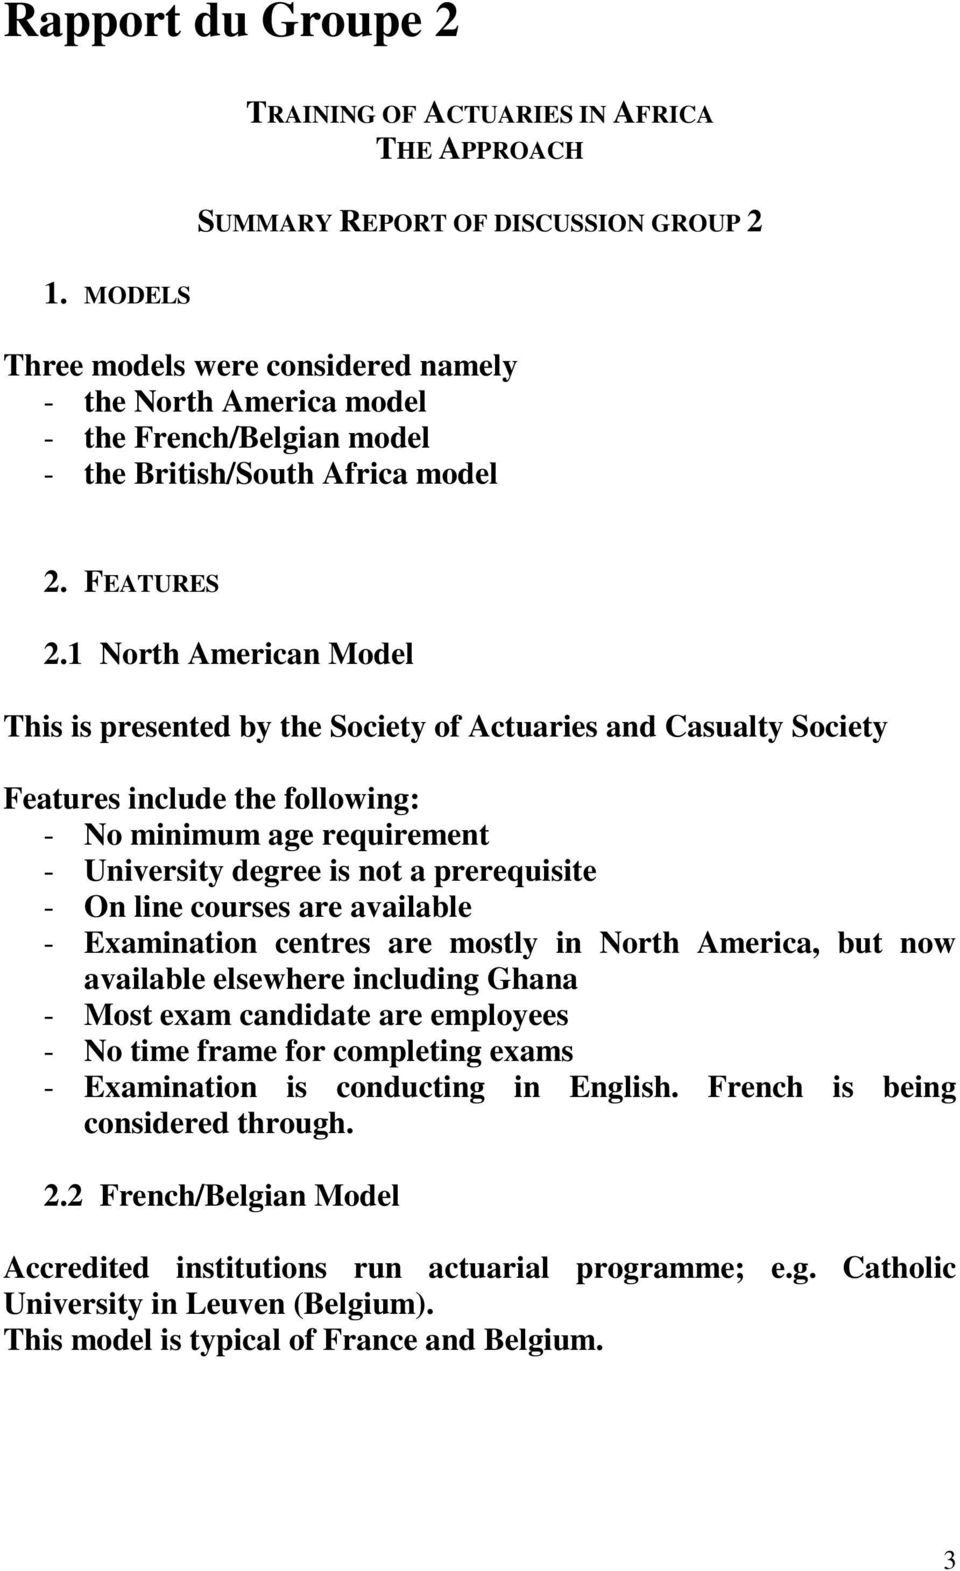 1 North American Model This is presented by the Society of Actuaries and Casualty Society Features include the following: - No minimum age requirement - University degree is not a prerequisite - On